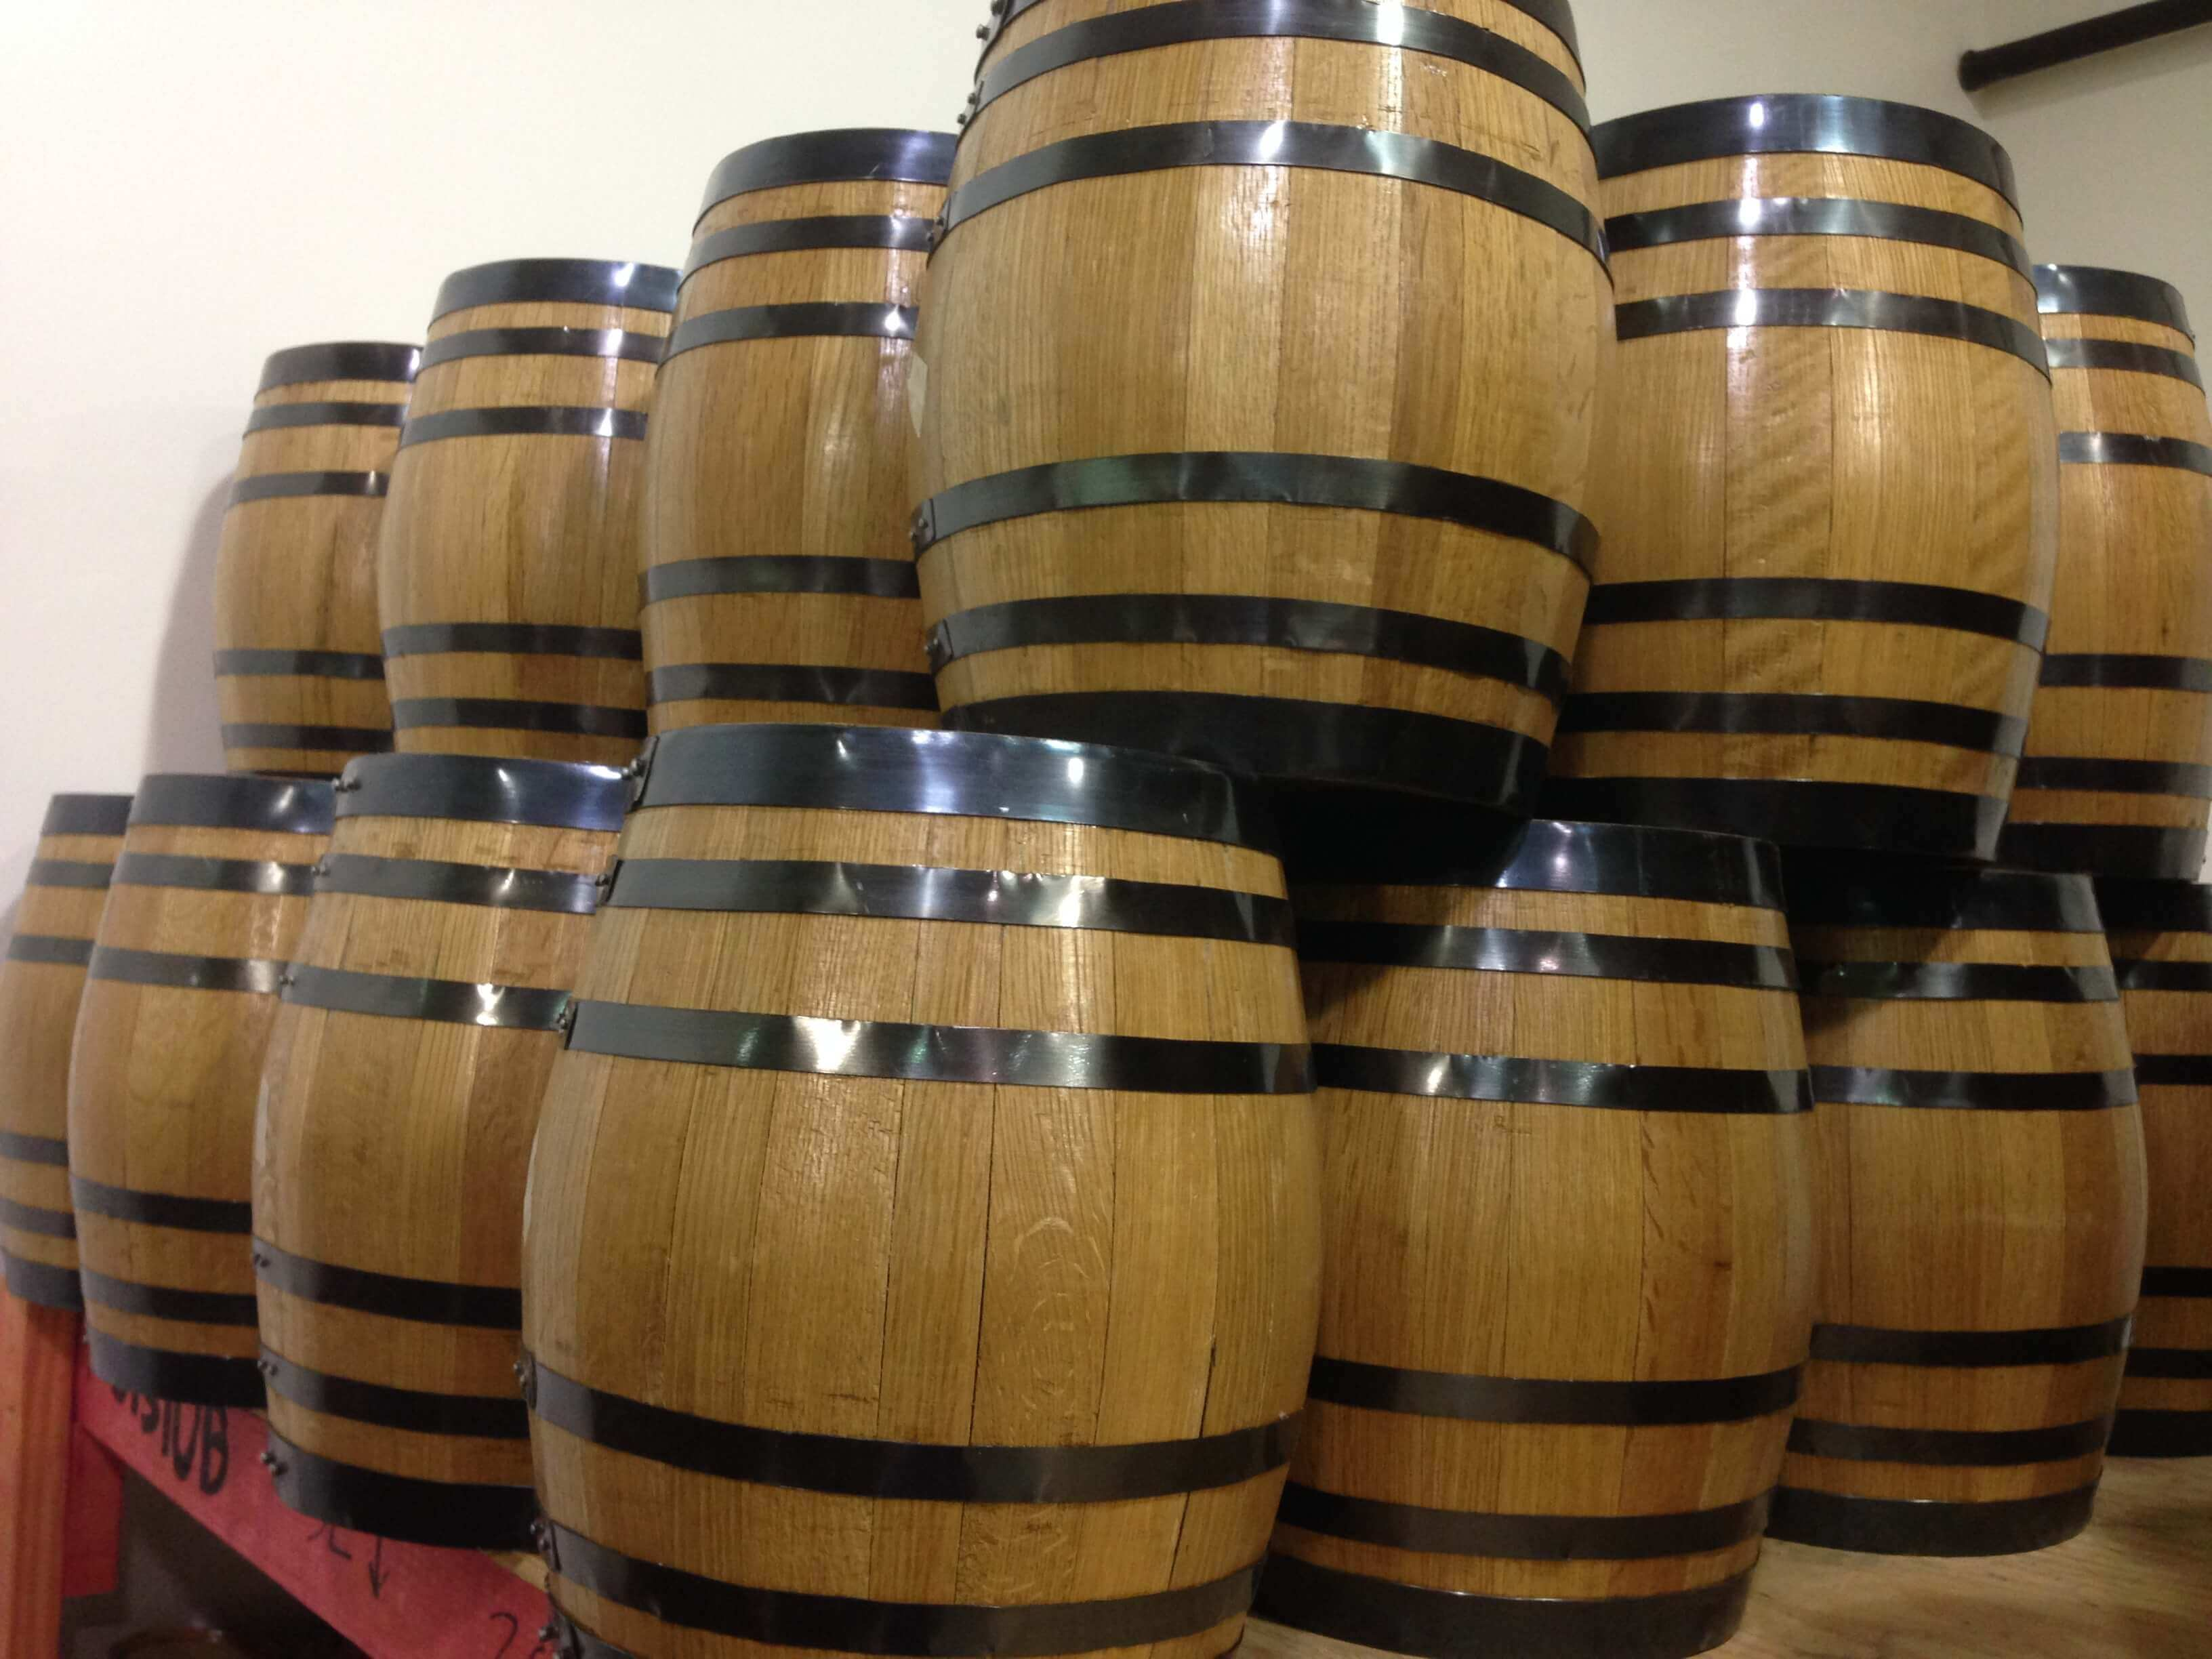 Many Regional Distilleries Use Small Wooden Barrels For Aging Red